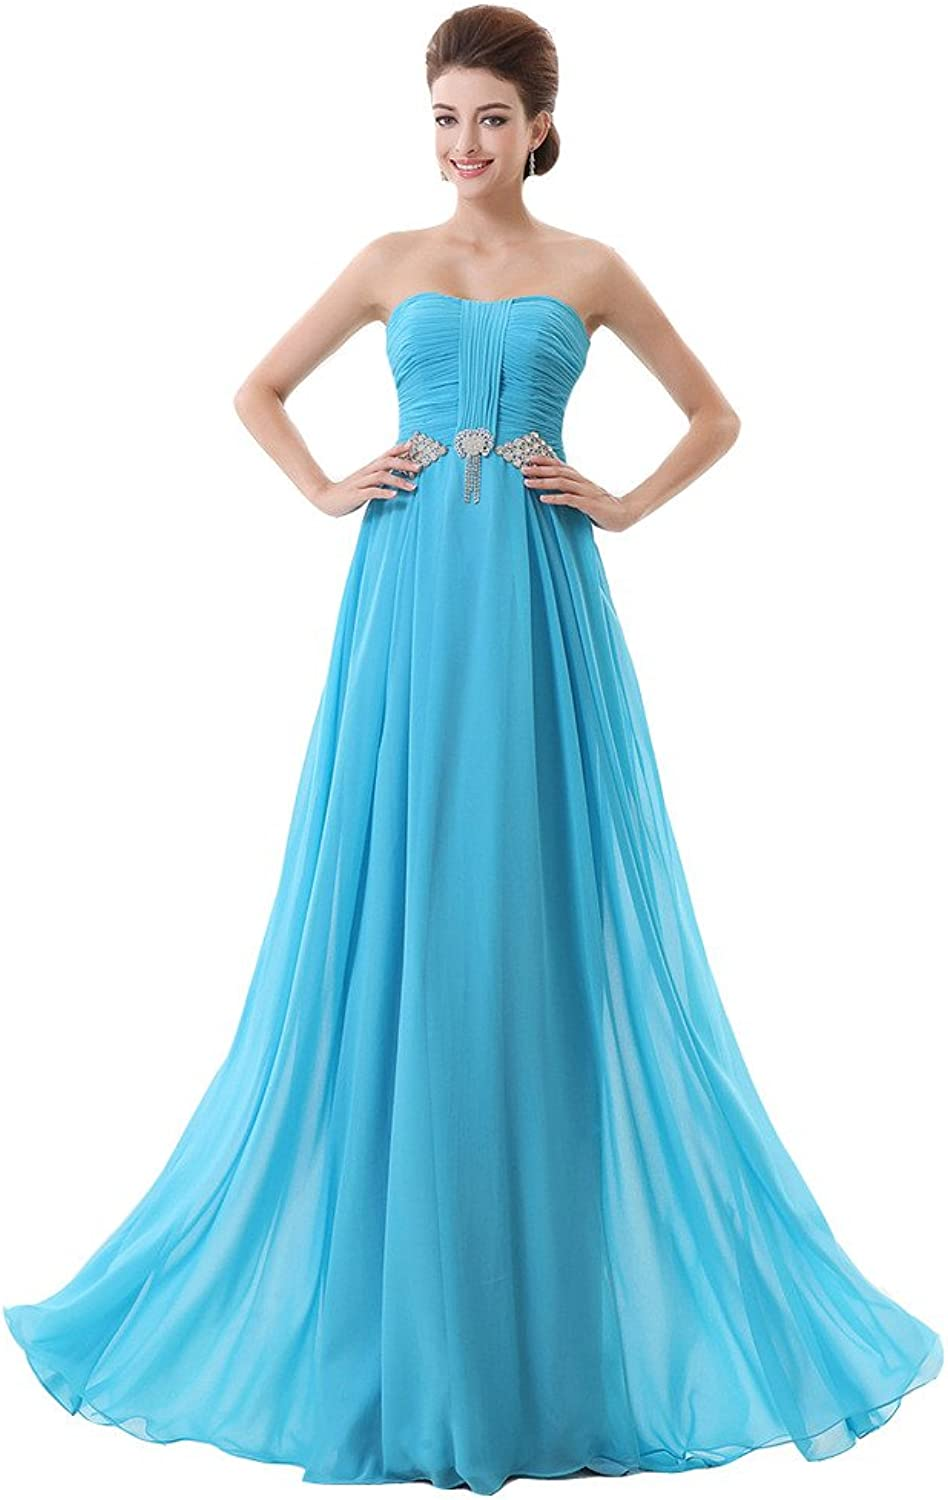 Lemai Women's bluee Sweetheart Crystals Long A Line Formal Evening Prom Dresses